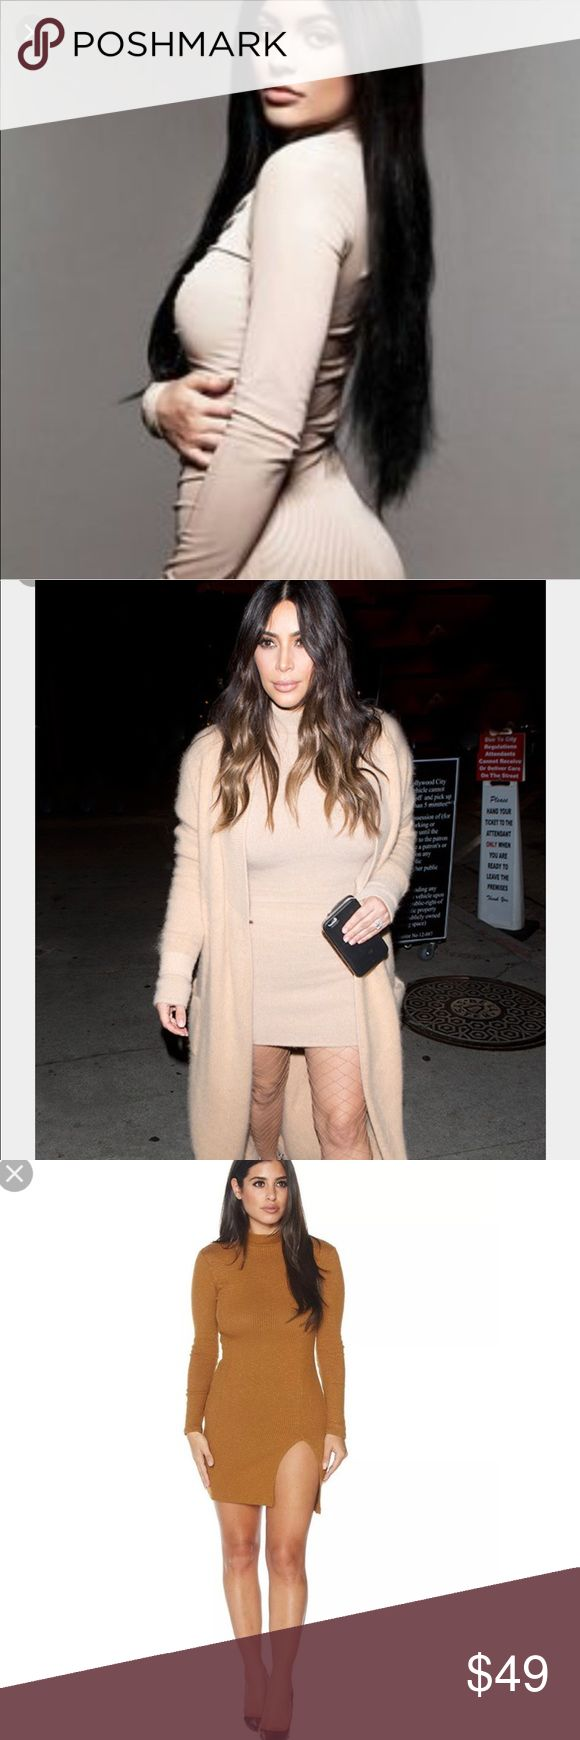 🔥Kylie J & Kim K Naked Wardrobe Dress From the line that Kim Kardashian West adores so much, she's now carrying it in her Dash stores. This stunning nude colored dress will suck you in at all the right places, hugging every curve. Long sleeves, mock neck, thigh slit & the fabric has good stretch to it. Effortless, sexy chic. Brand new with tags. Size small. (3rd photo is a stock photo of the dress style, not color. This dress is nude, like the first two photos)                Tags: Bebe…